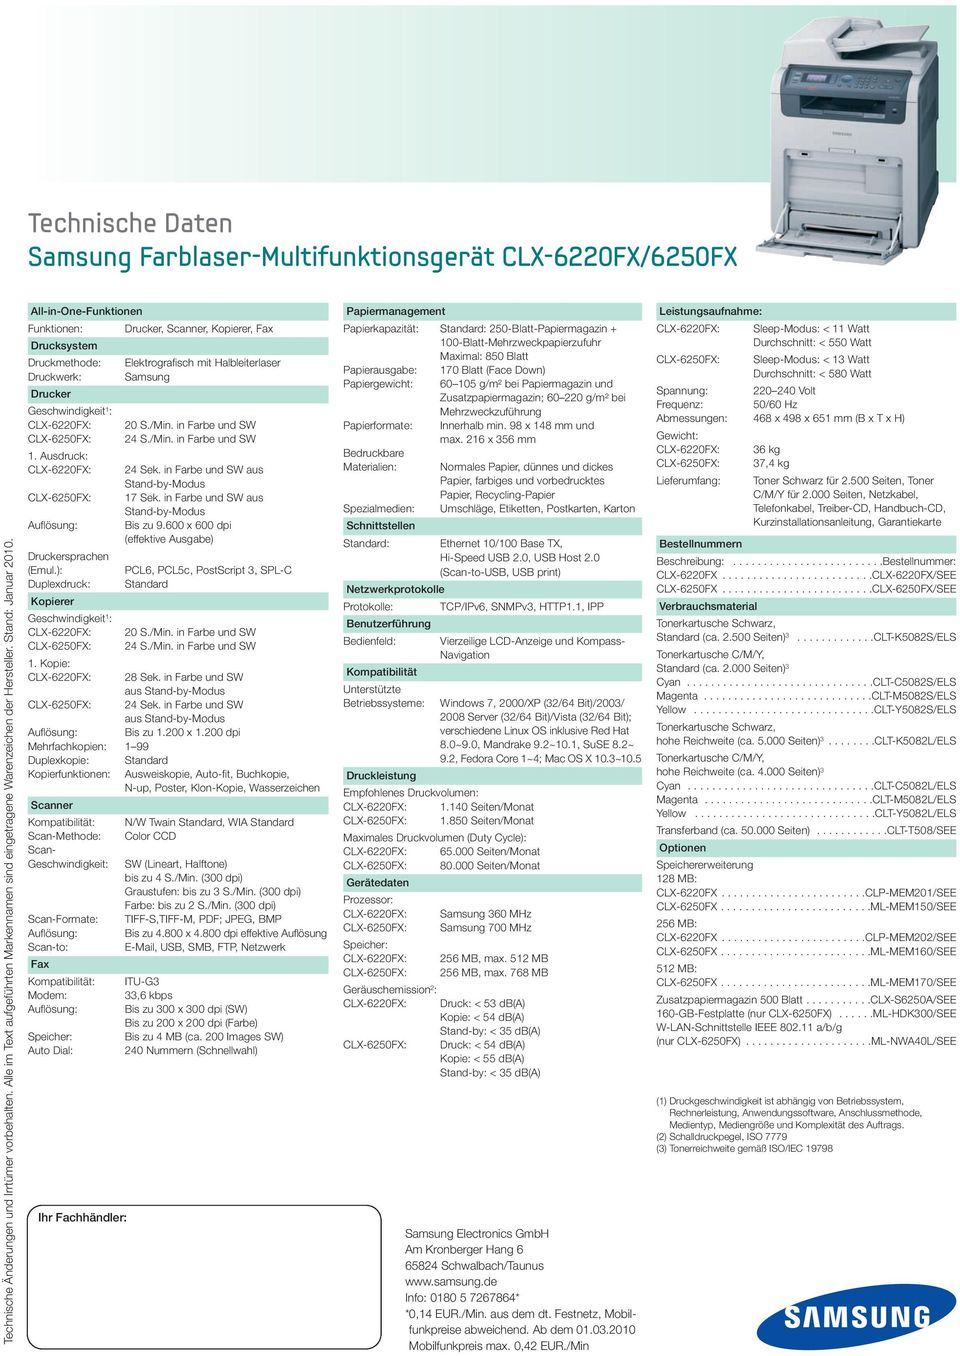 All-in-One-Funktionen Funktionen: Drucker, Scanner, Kopierer, Fax Drucksystem Druckmethode: Elektrografisch mit Halbleiterlaser Druckwerk: Samsung Drucker Geschwindigkeit 1 : CLX-6220FX: 20 S./Min.